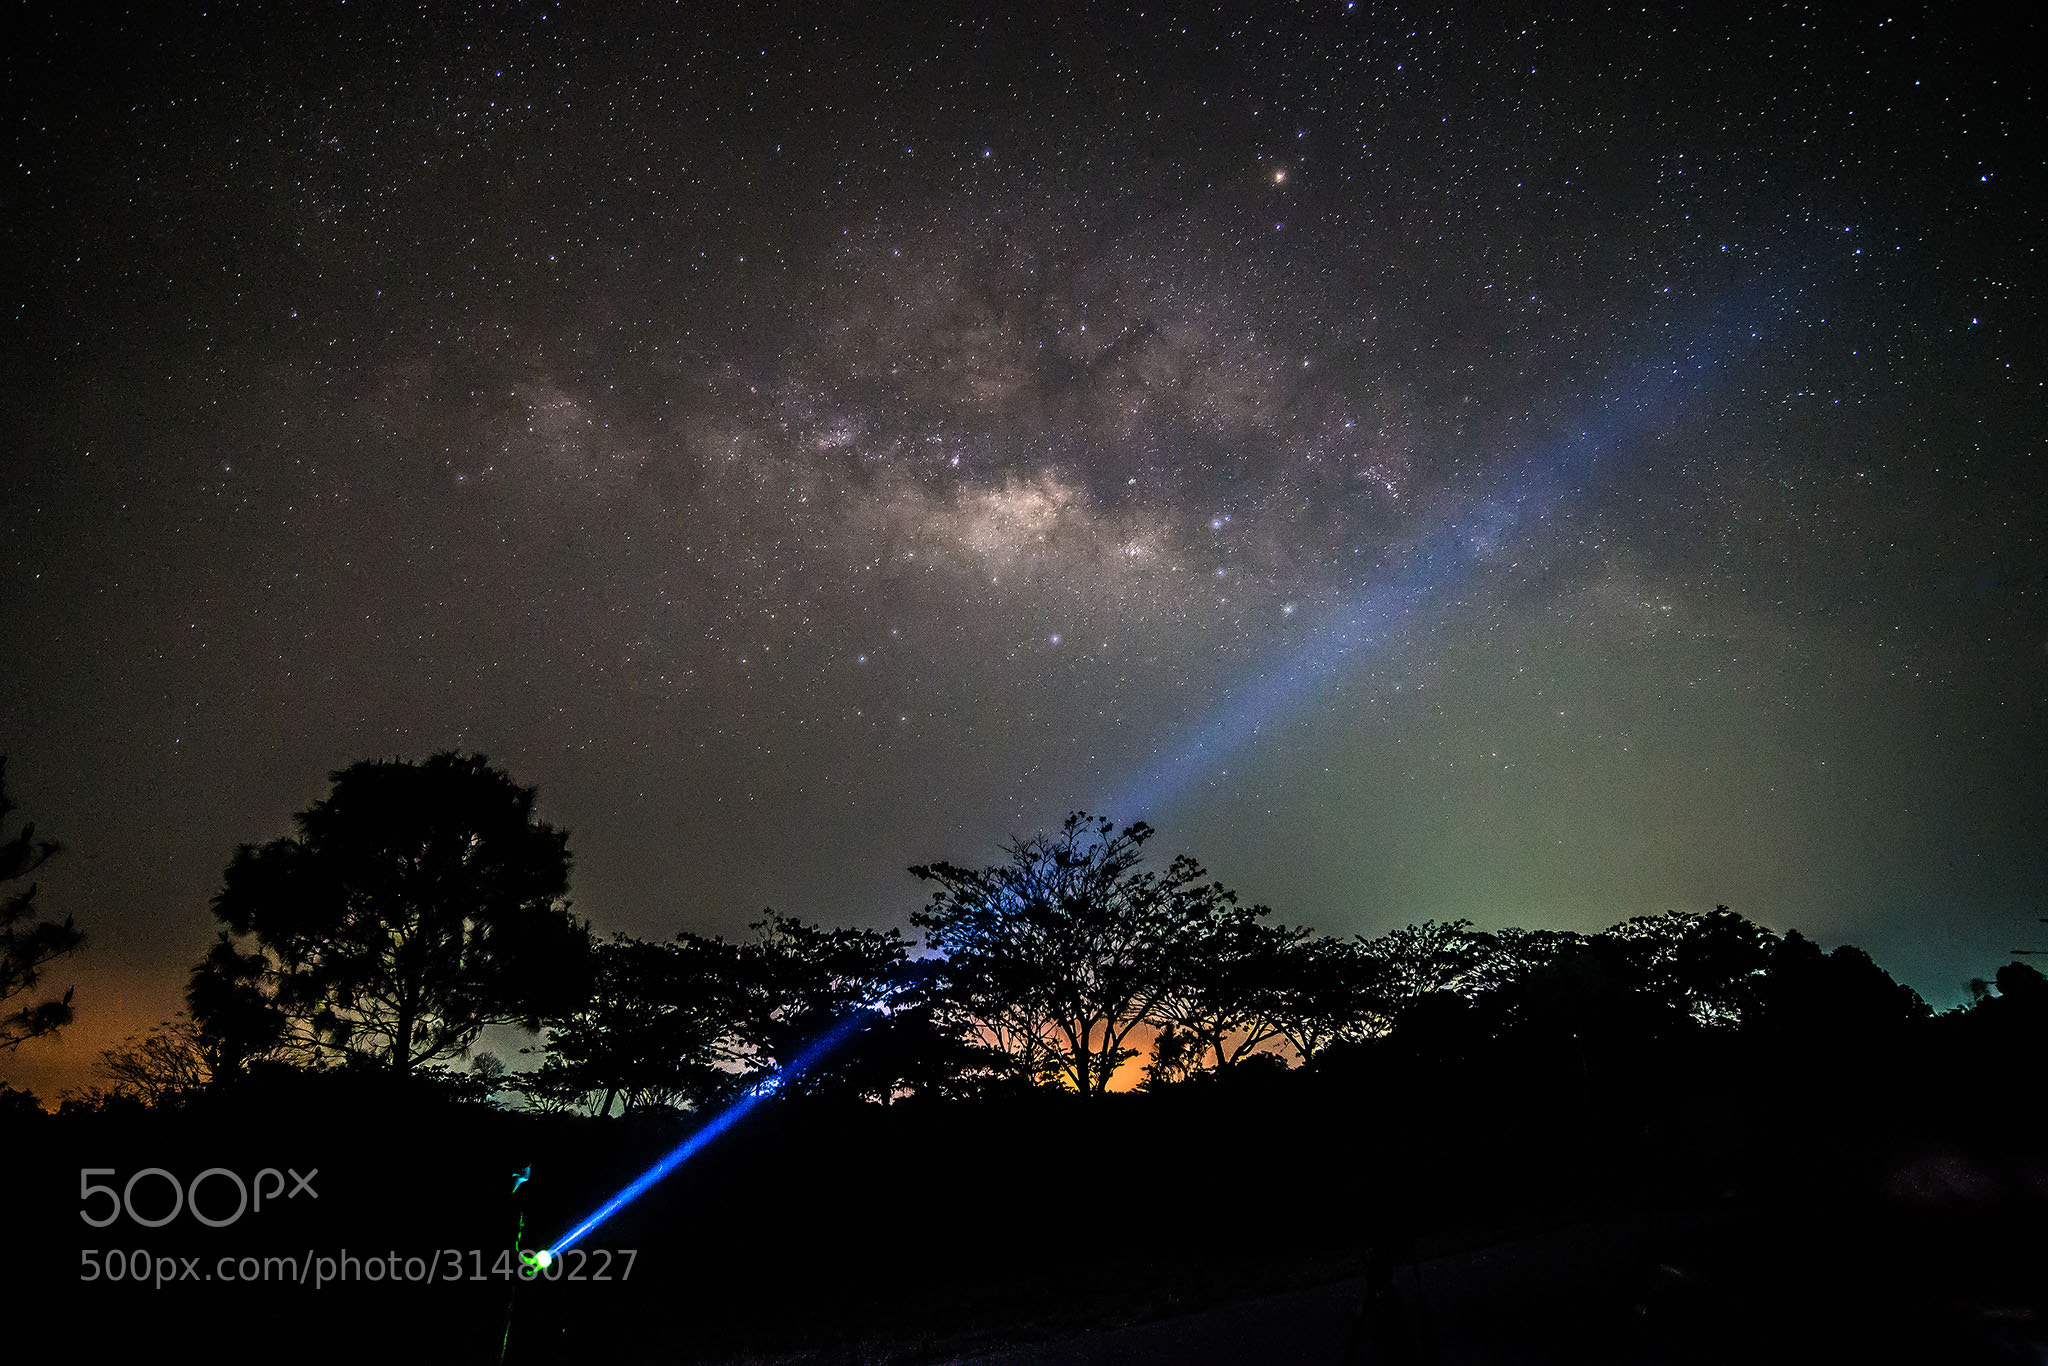 Photograph Milky Way by Mez Pinijpongphan on 500px